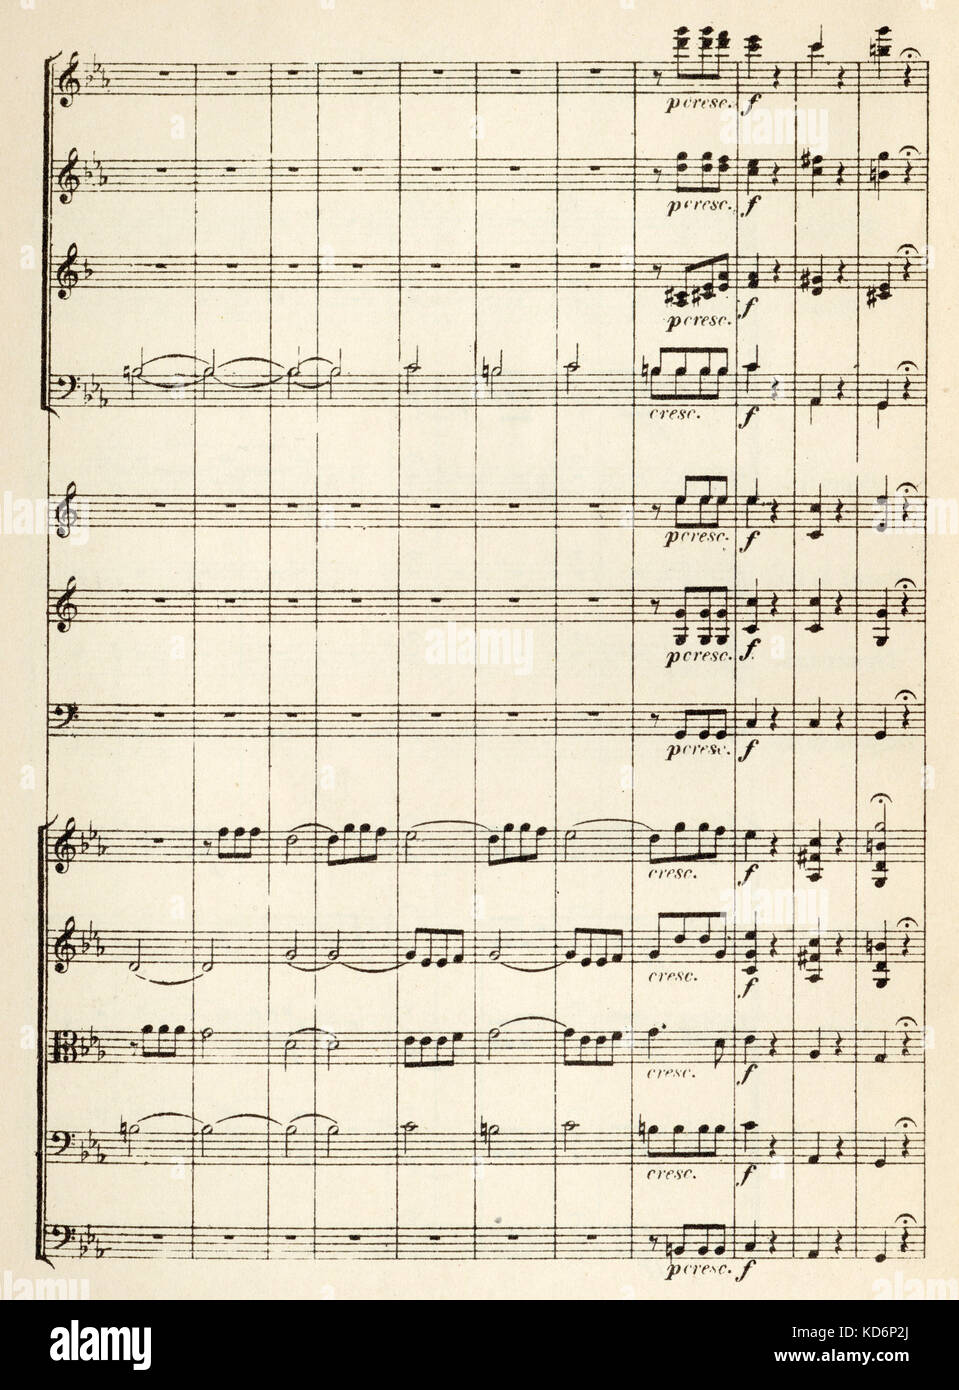 5Th Symphony beethoven 5th symphony - opening bars of printed score for